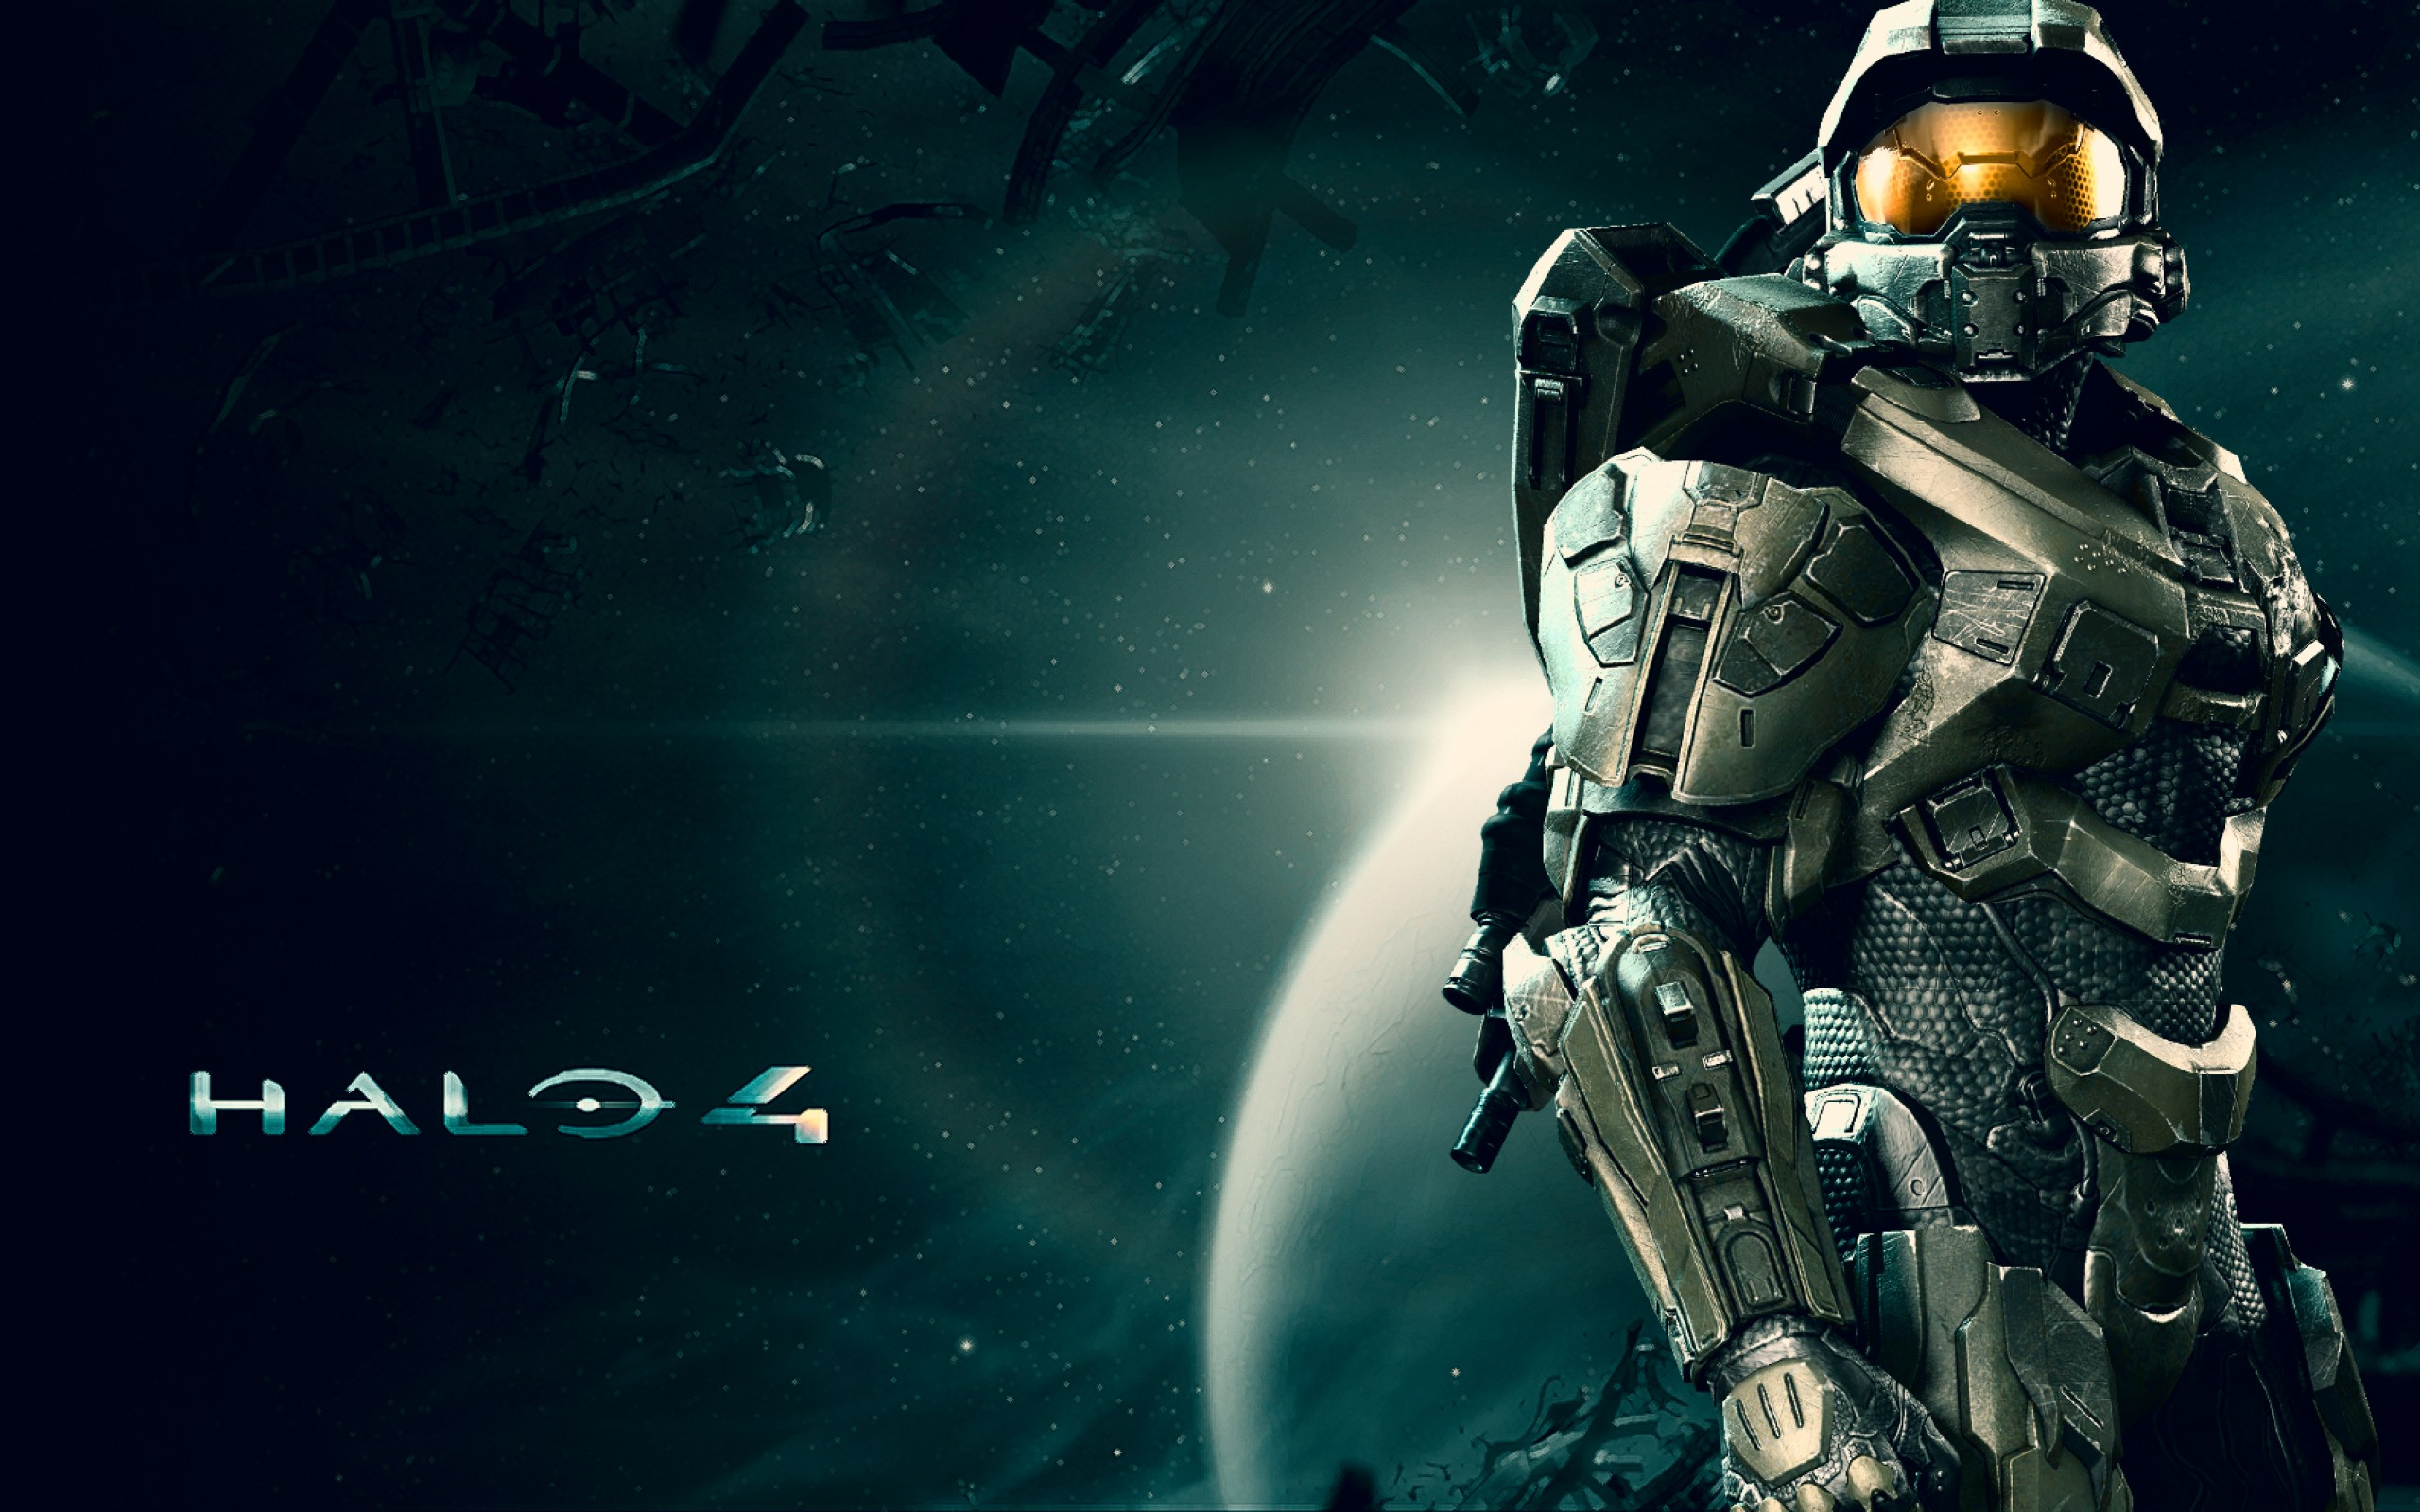 86 Halo 4 HD Wallpapers | Backgrounds - Wallpaper Abyss